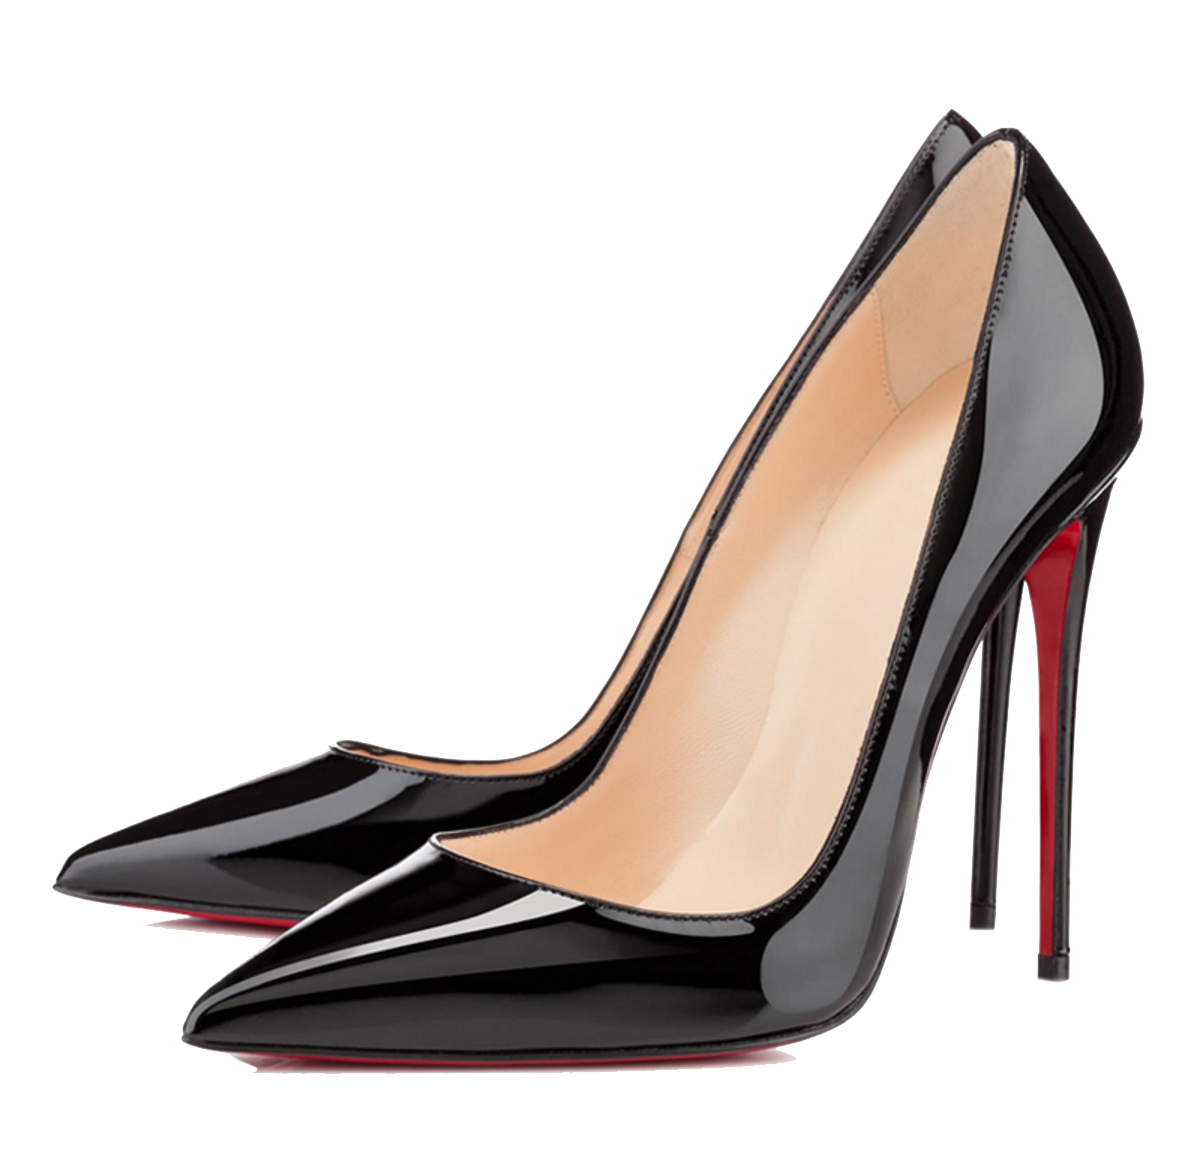 women shoes png downloads image